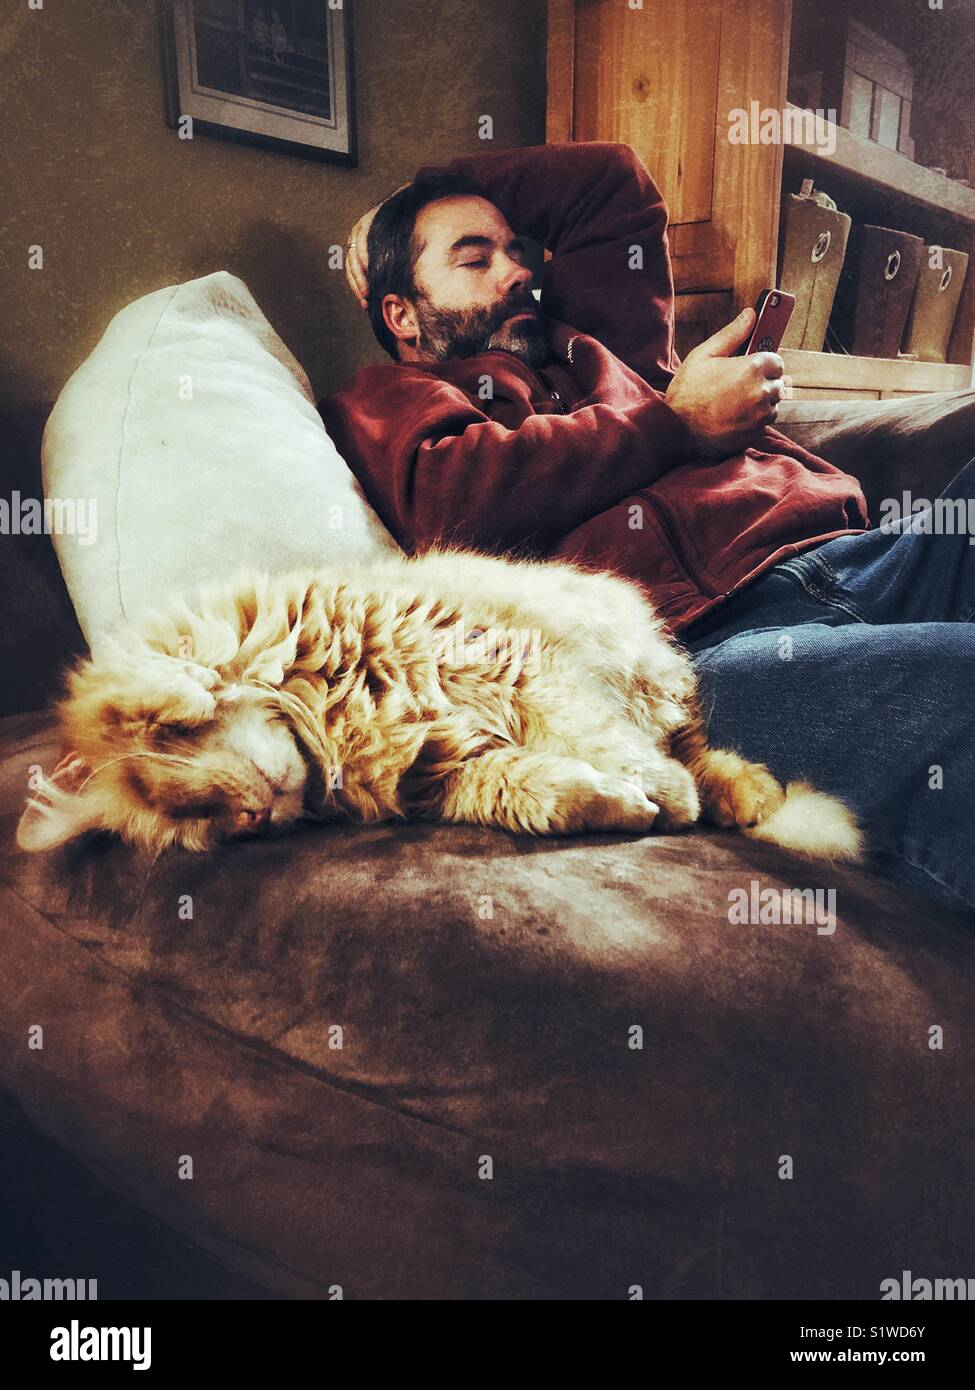 Homme à barbe sombre relaxing on sofa chaise à l'aide d'une grosse orange smartphone avec chat Photo Stock